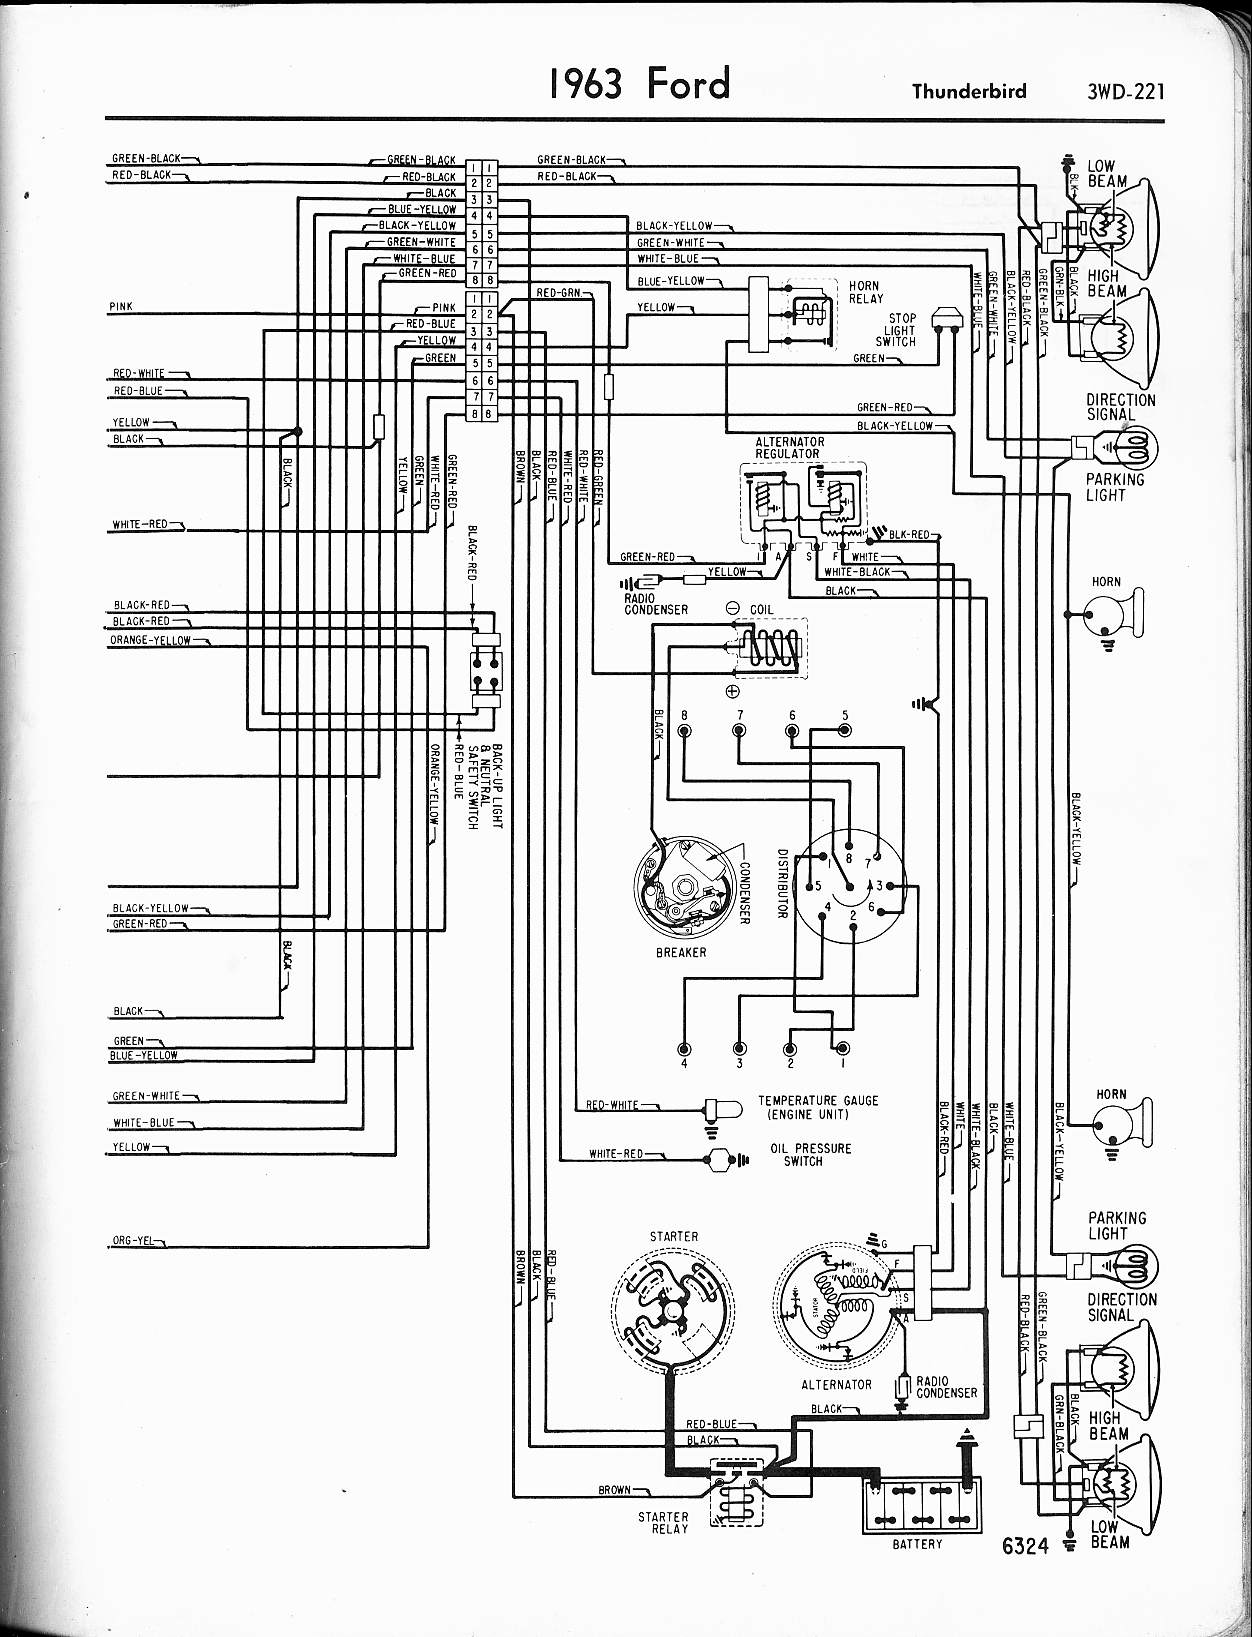 MWire5765 221 1967 thunderbird turn signal diagram wiring schematic on 1967 Cub Cadet 100 at bayanpartner.co